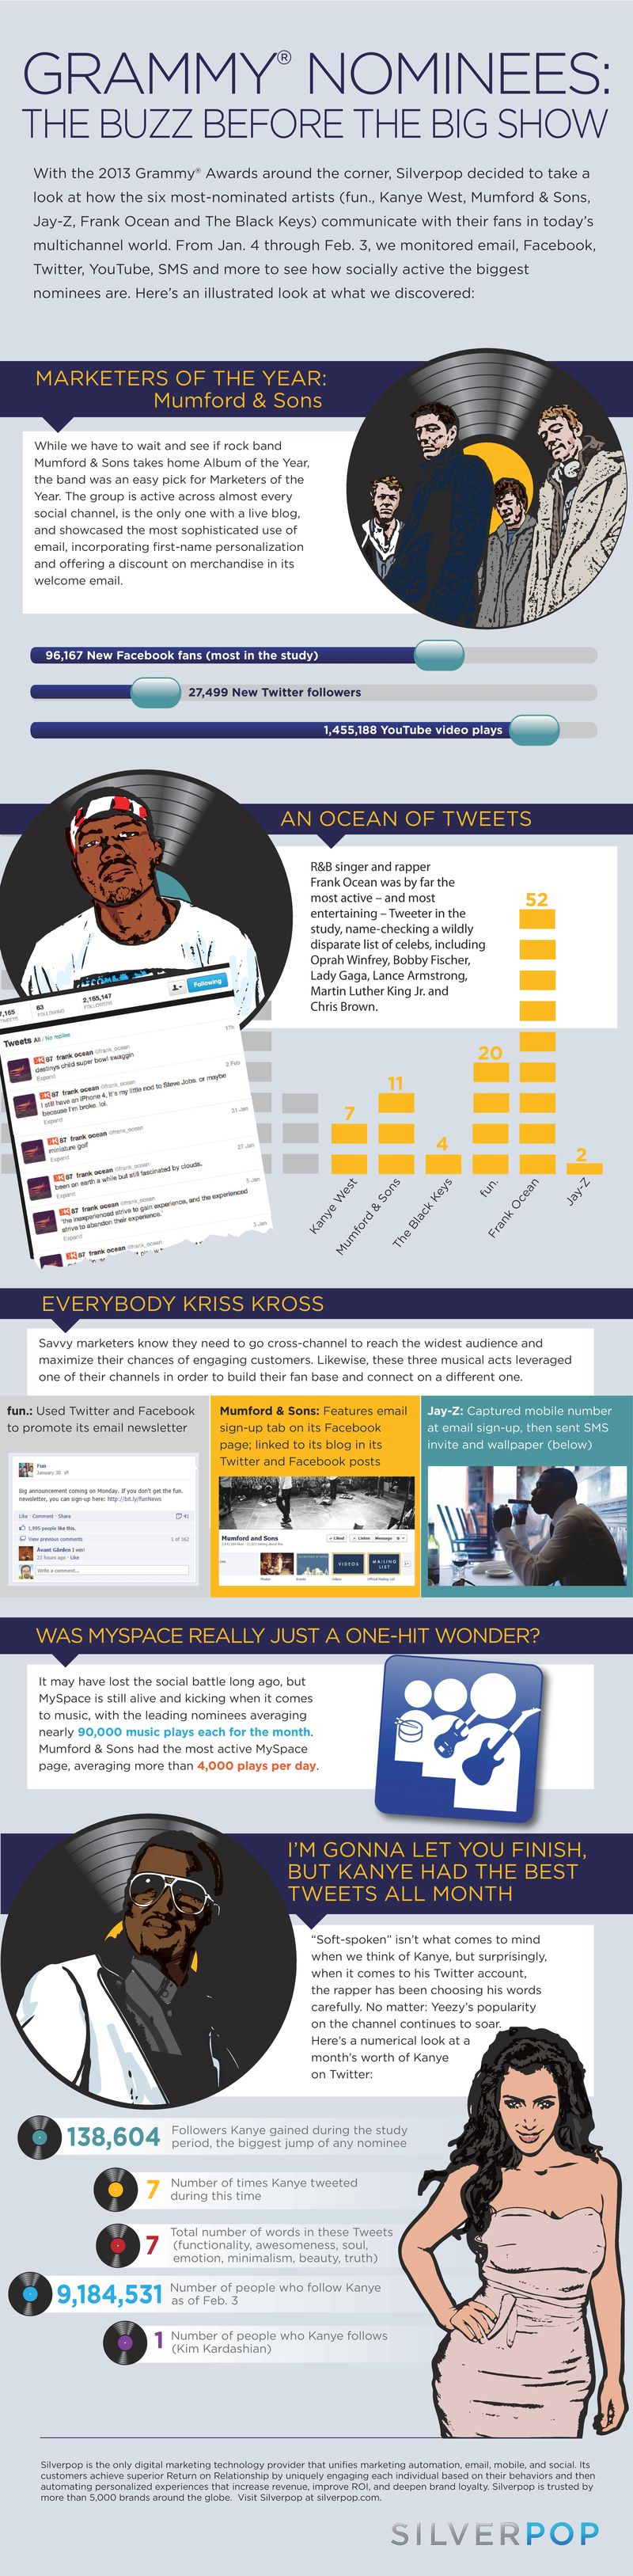 Grammy Nominees Social Buzz-Infographic